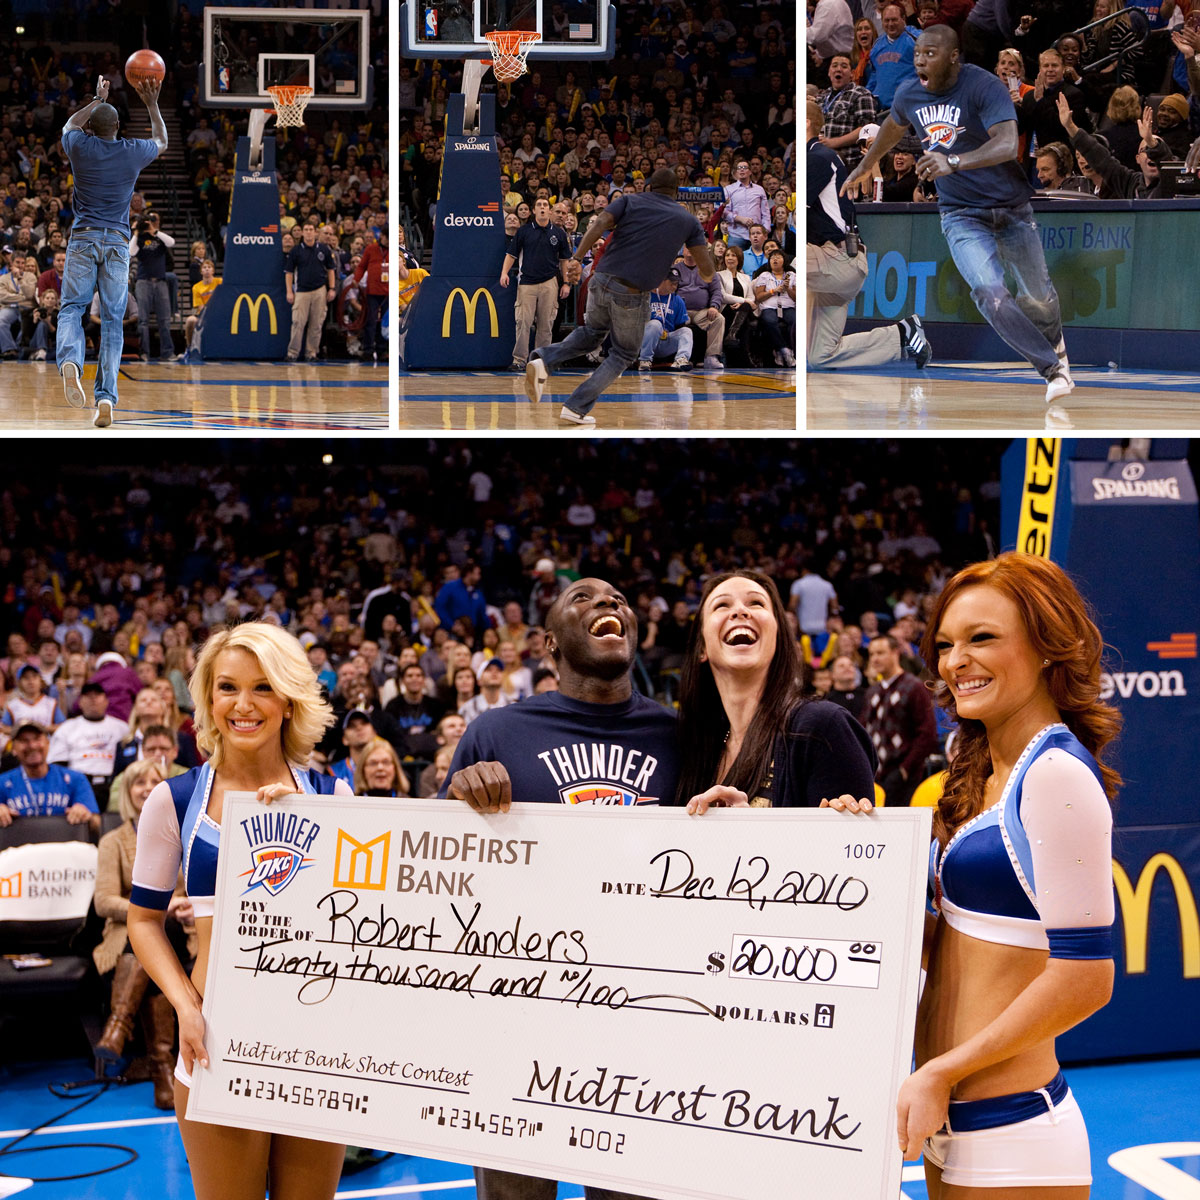 Midfirst Bank half-court shot